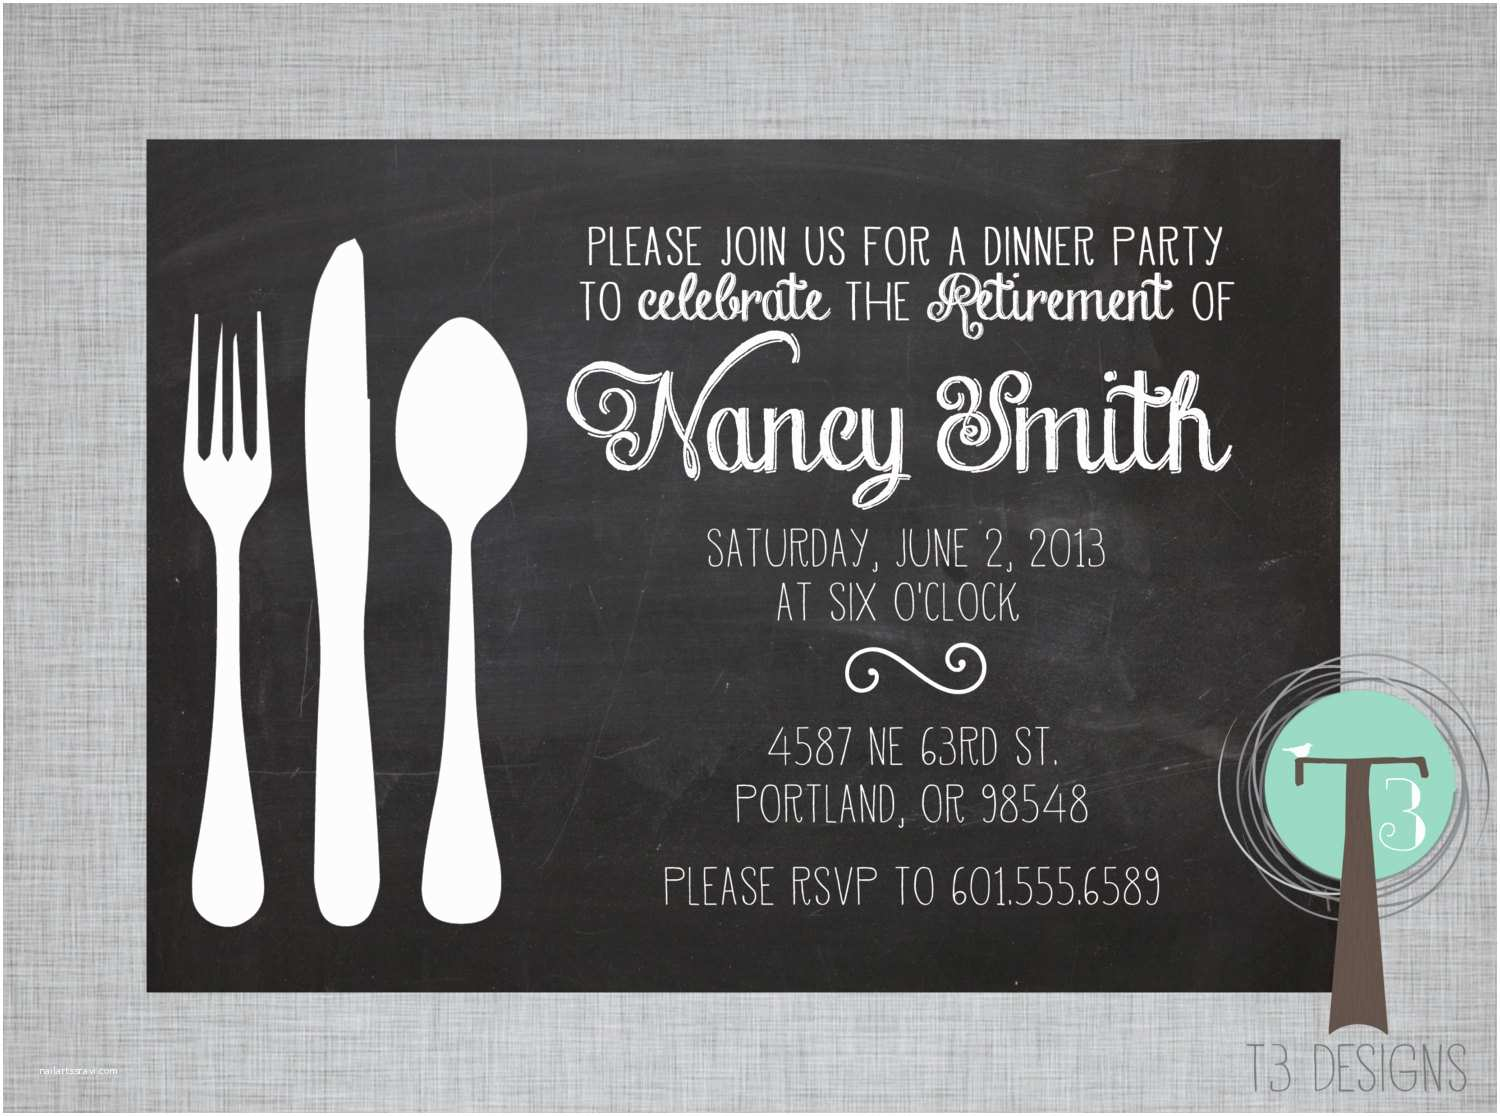 Dinner Party Invitations Retirement Party Invitation Dinner Party Invitation